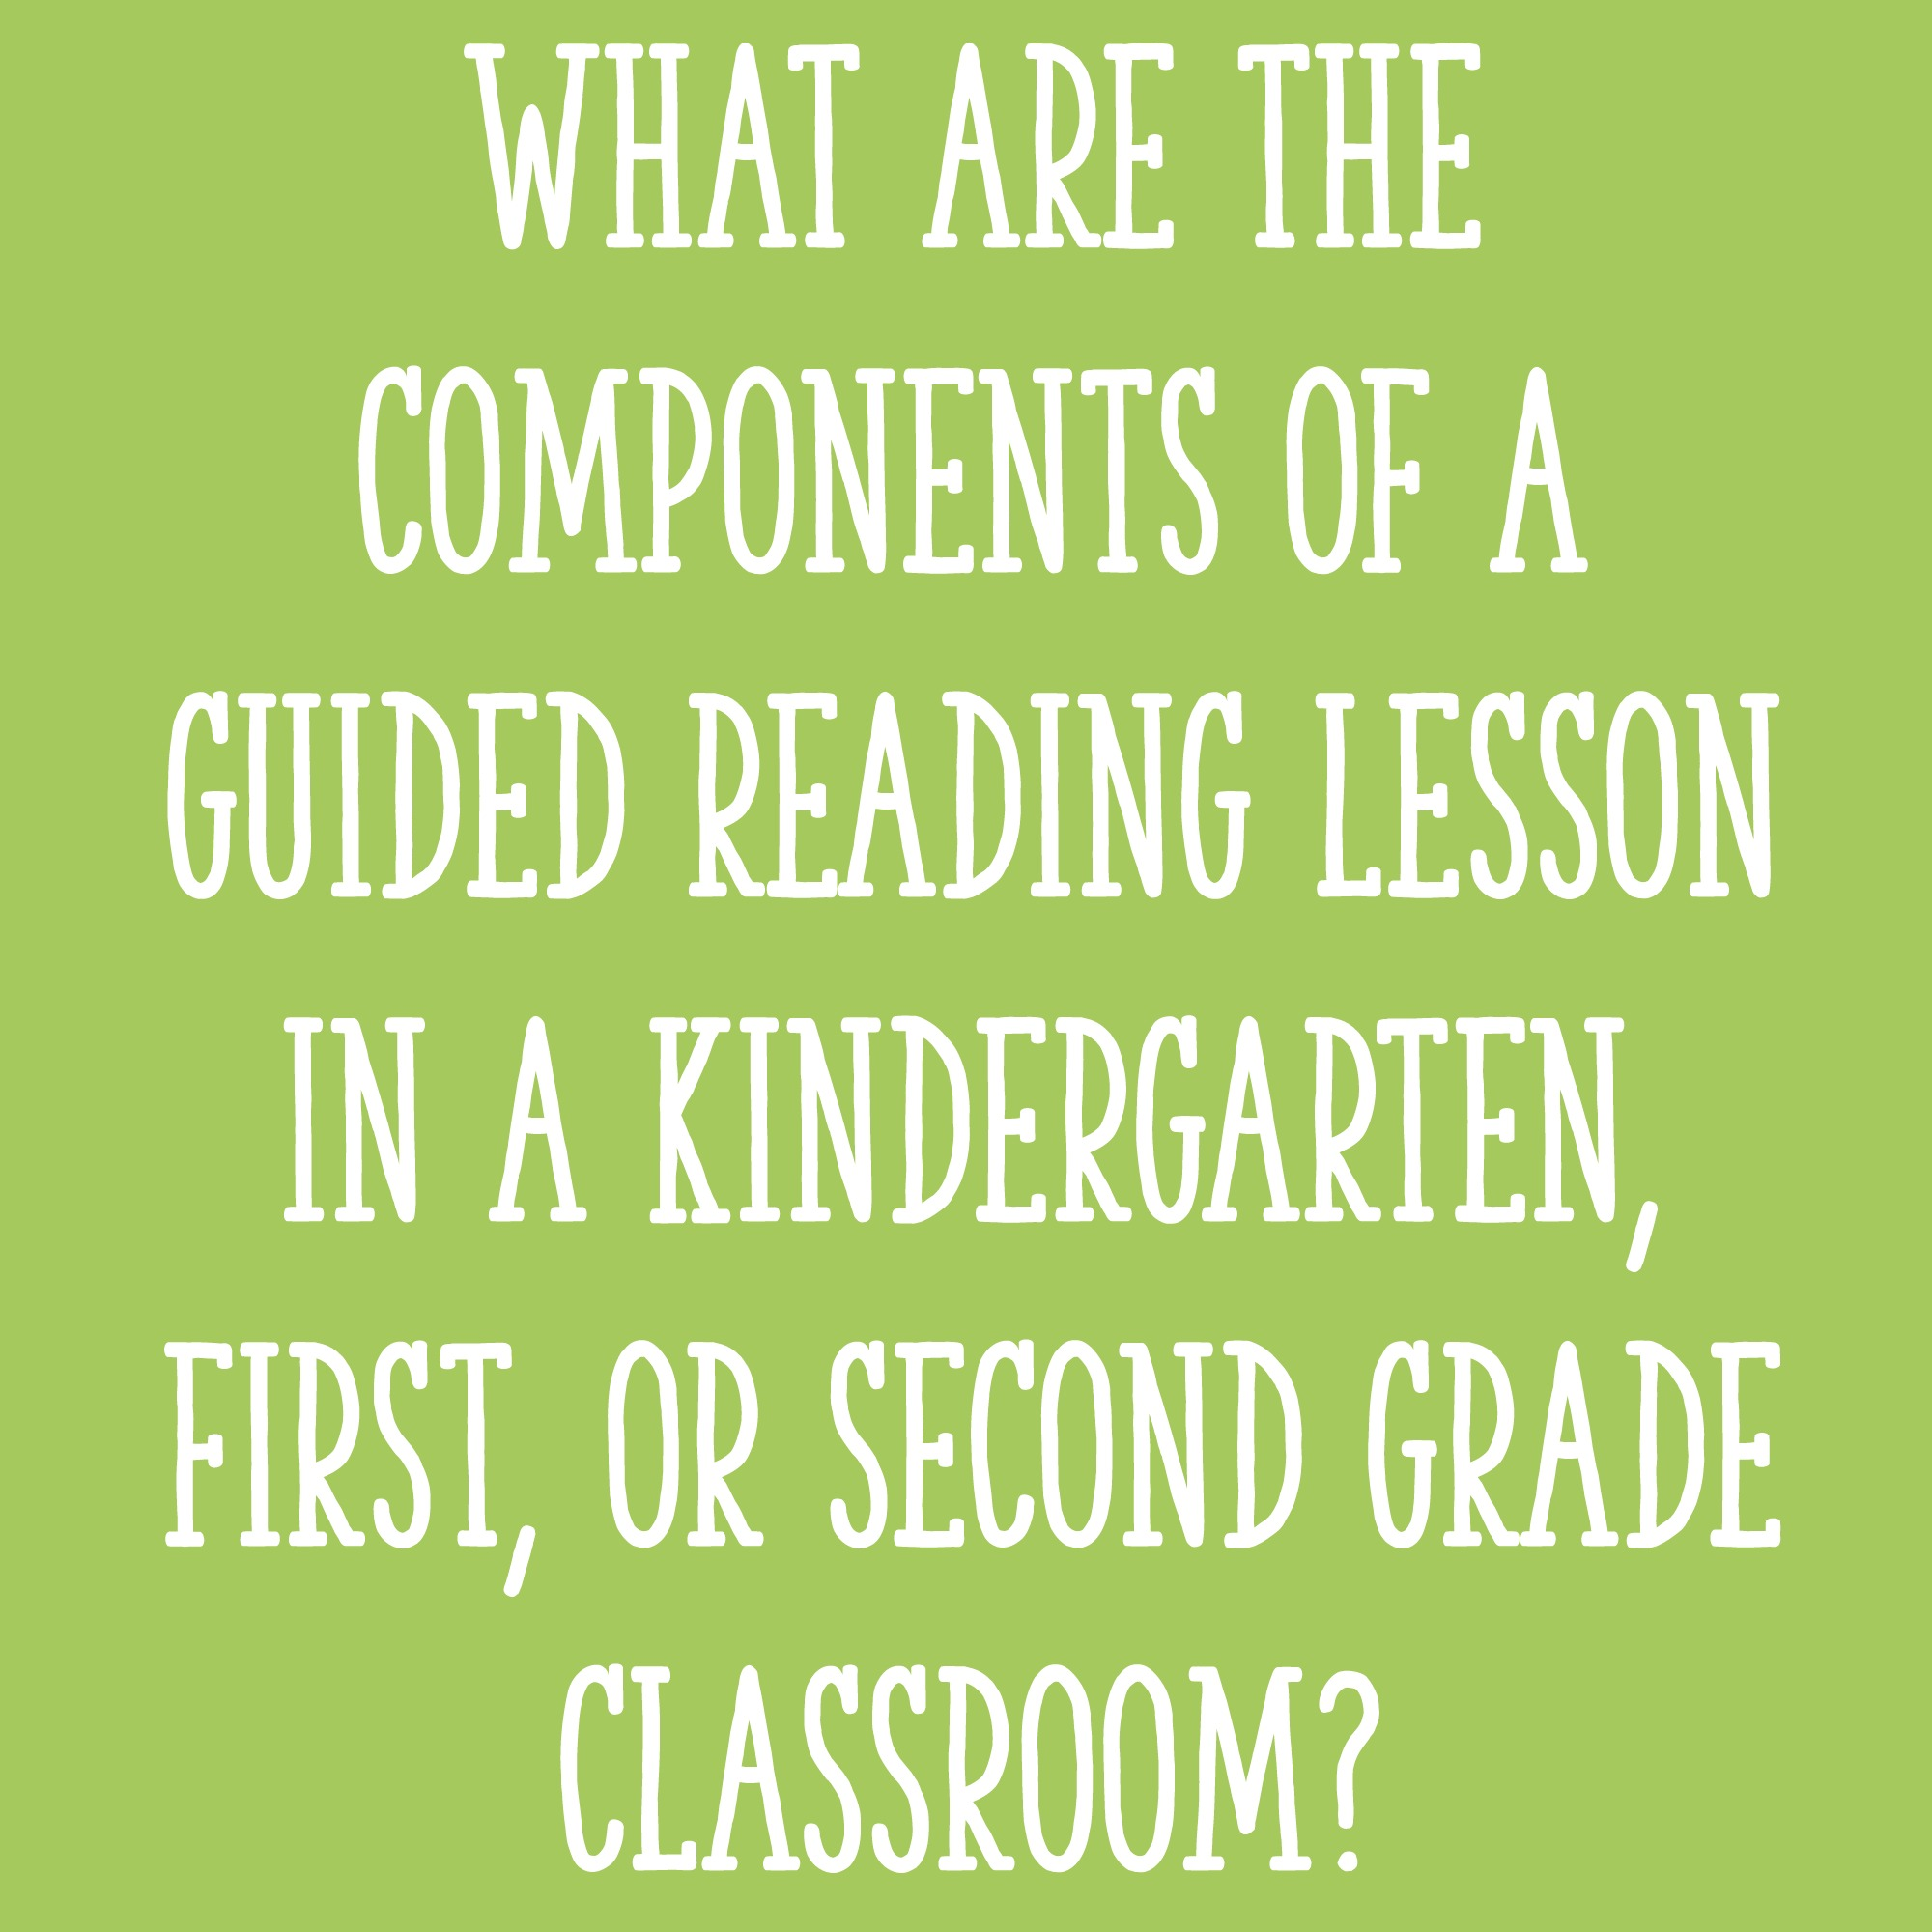 What Are The Components Of A Guided Reading Lesson In A Kindergarten First Or Second Grade